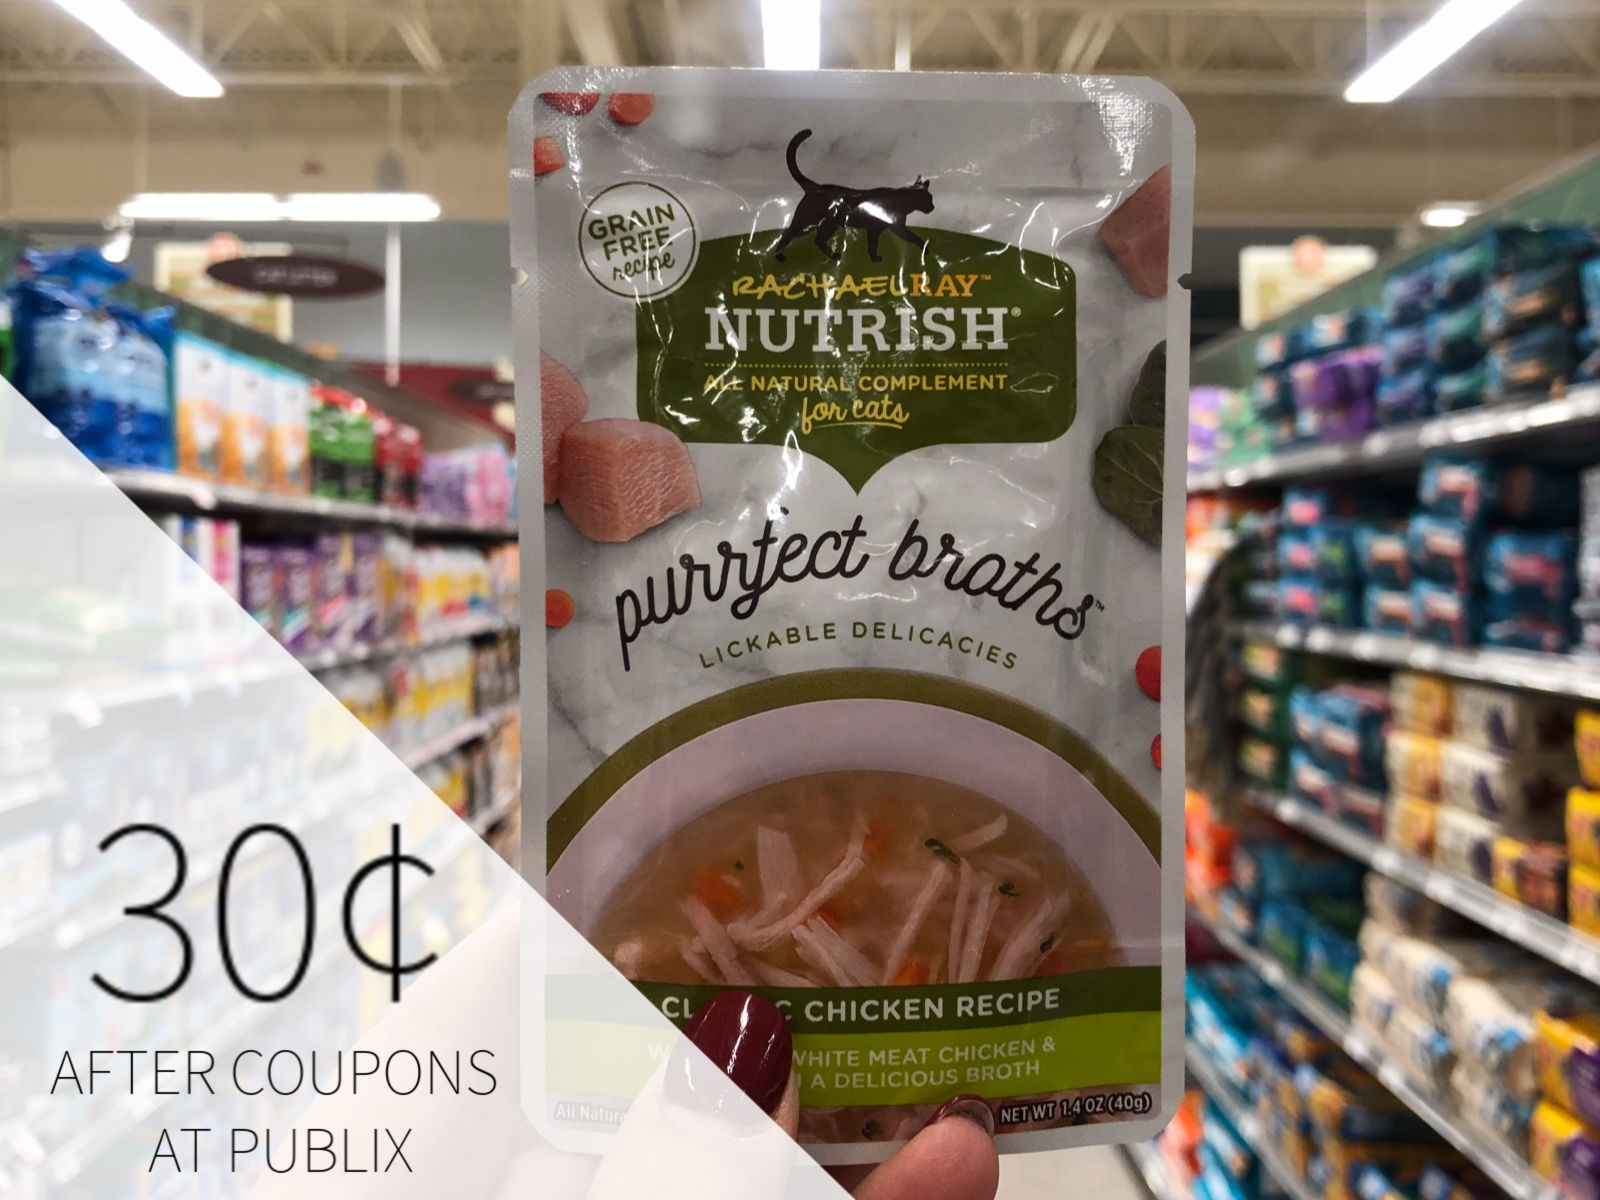 Rachael Ray Nutrish Purrfect Broths Only 30¢ At Publix on I Heart Publix 2